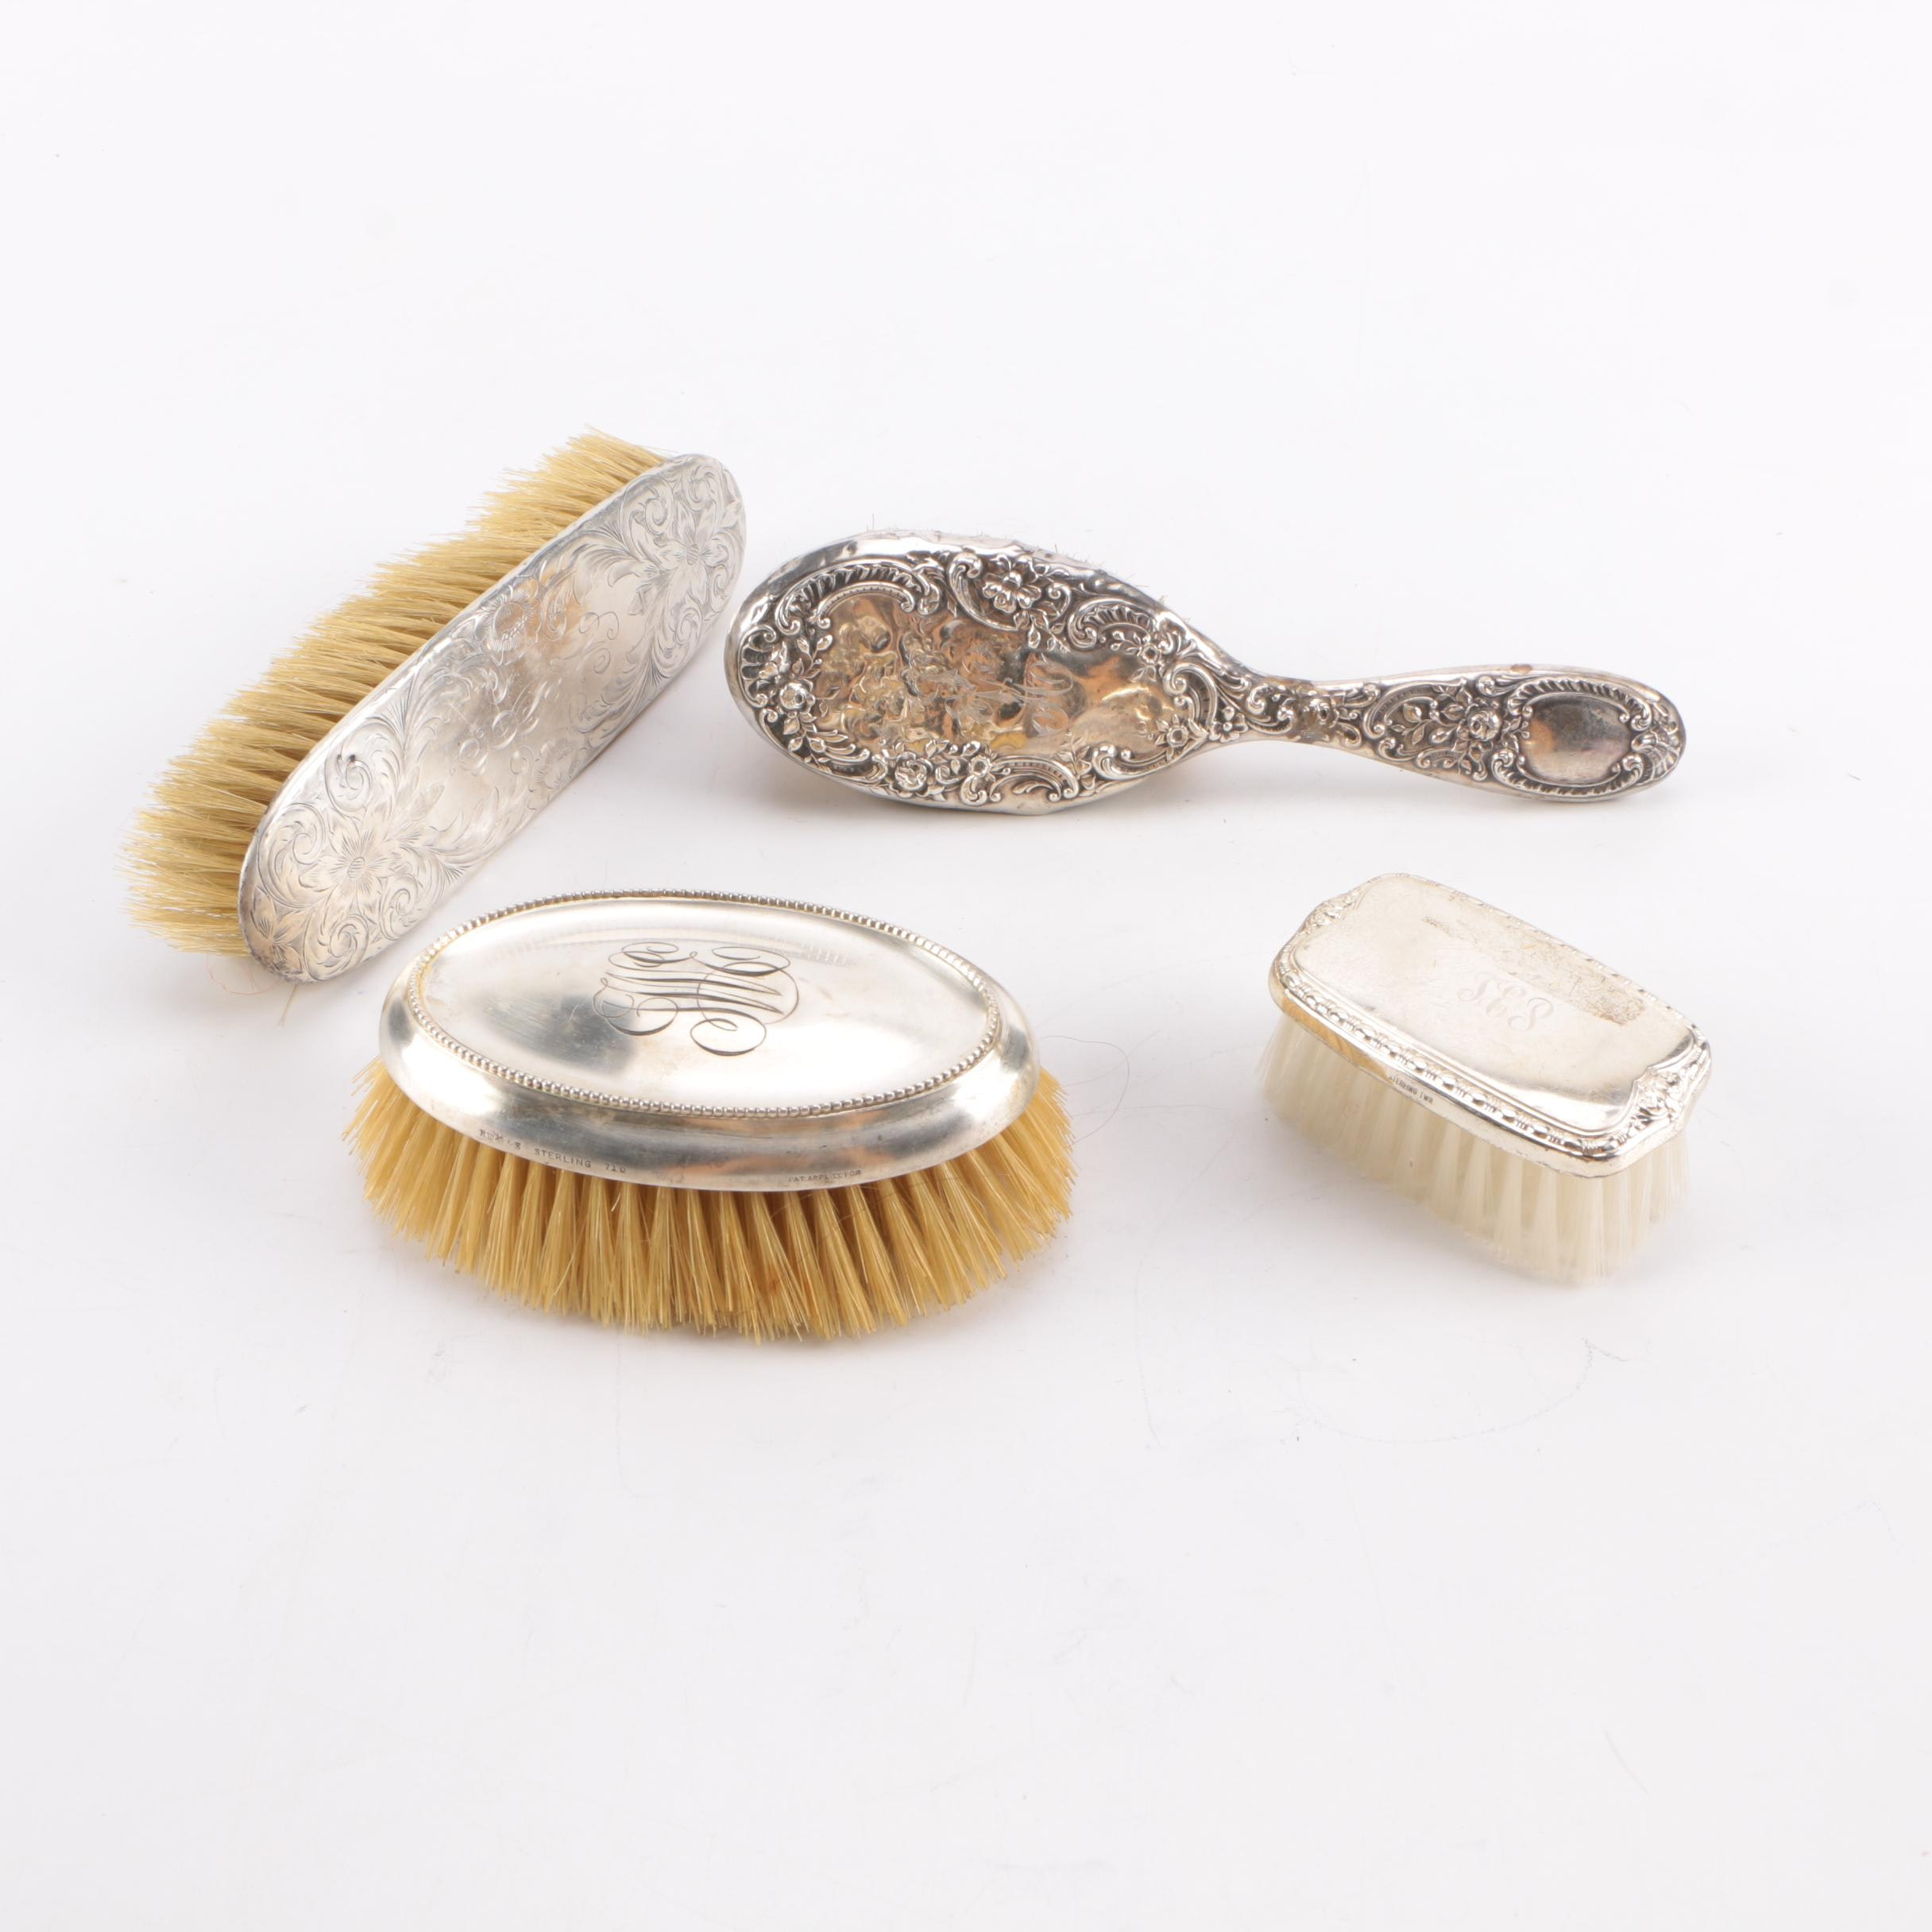 Gorham and Other Sterling Silver Backed Vanity Brushes